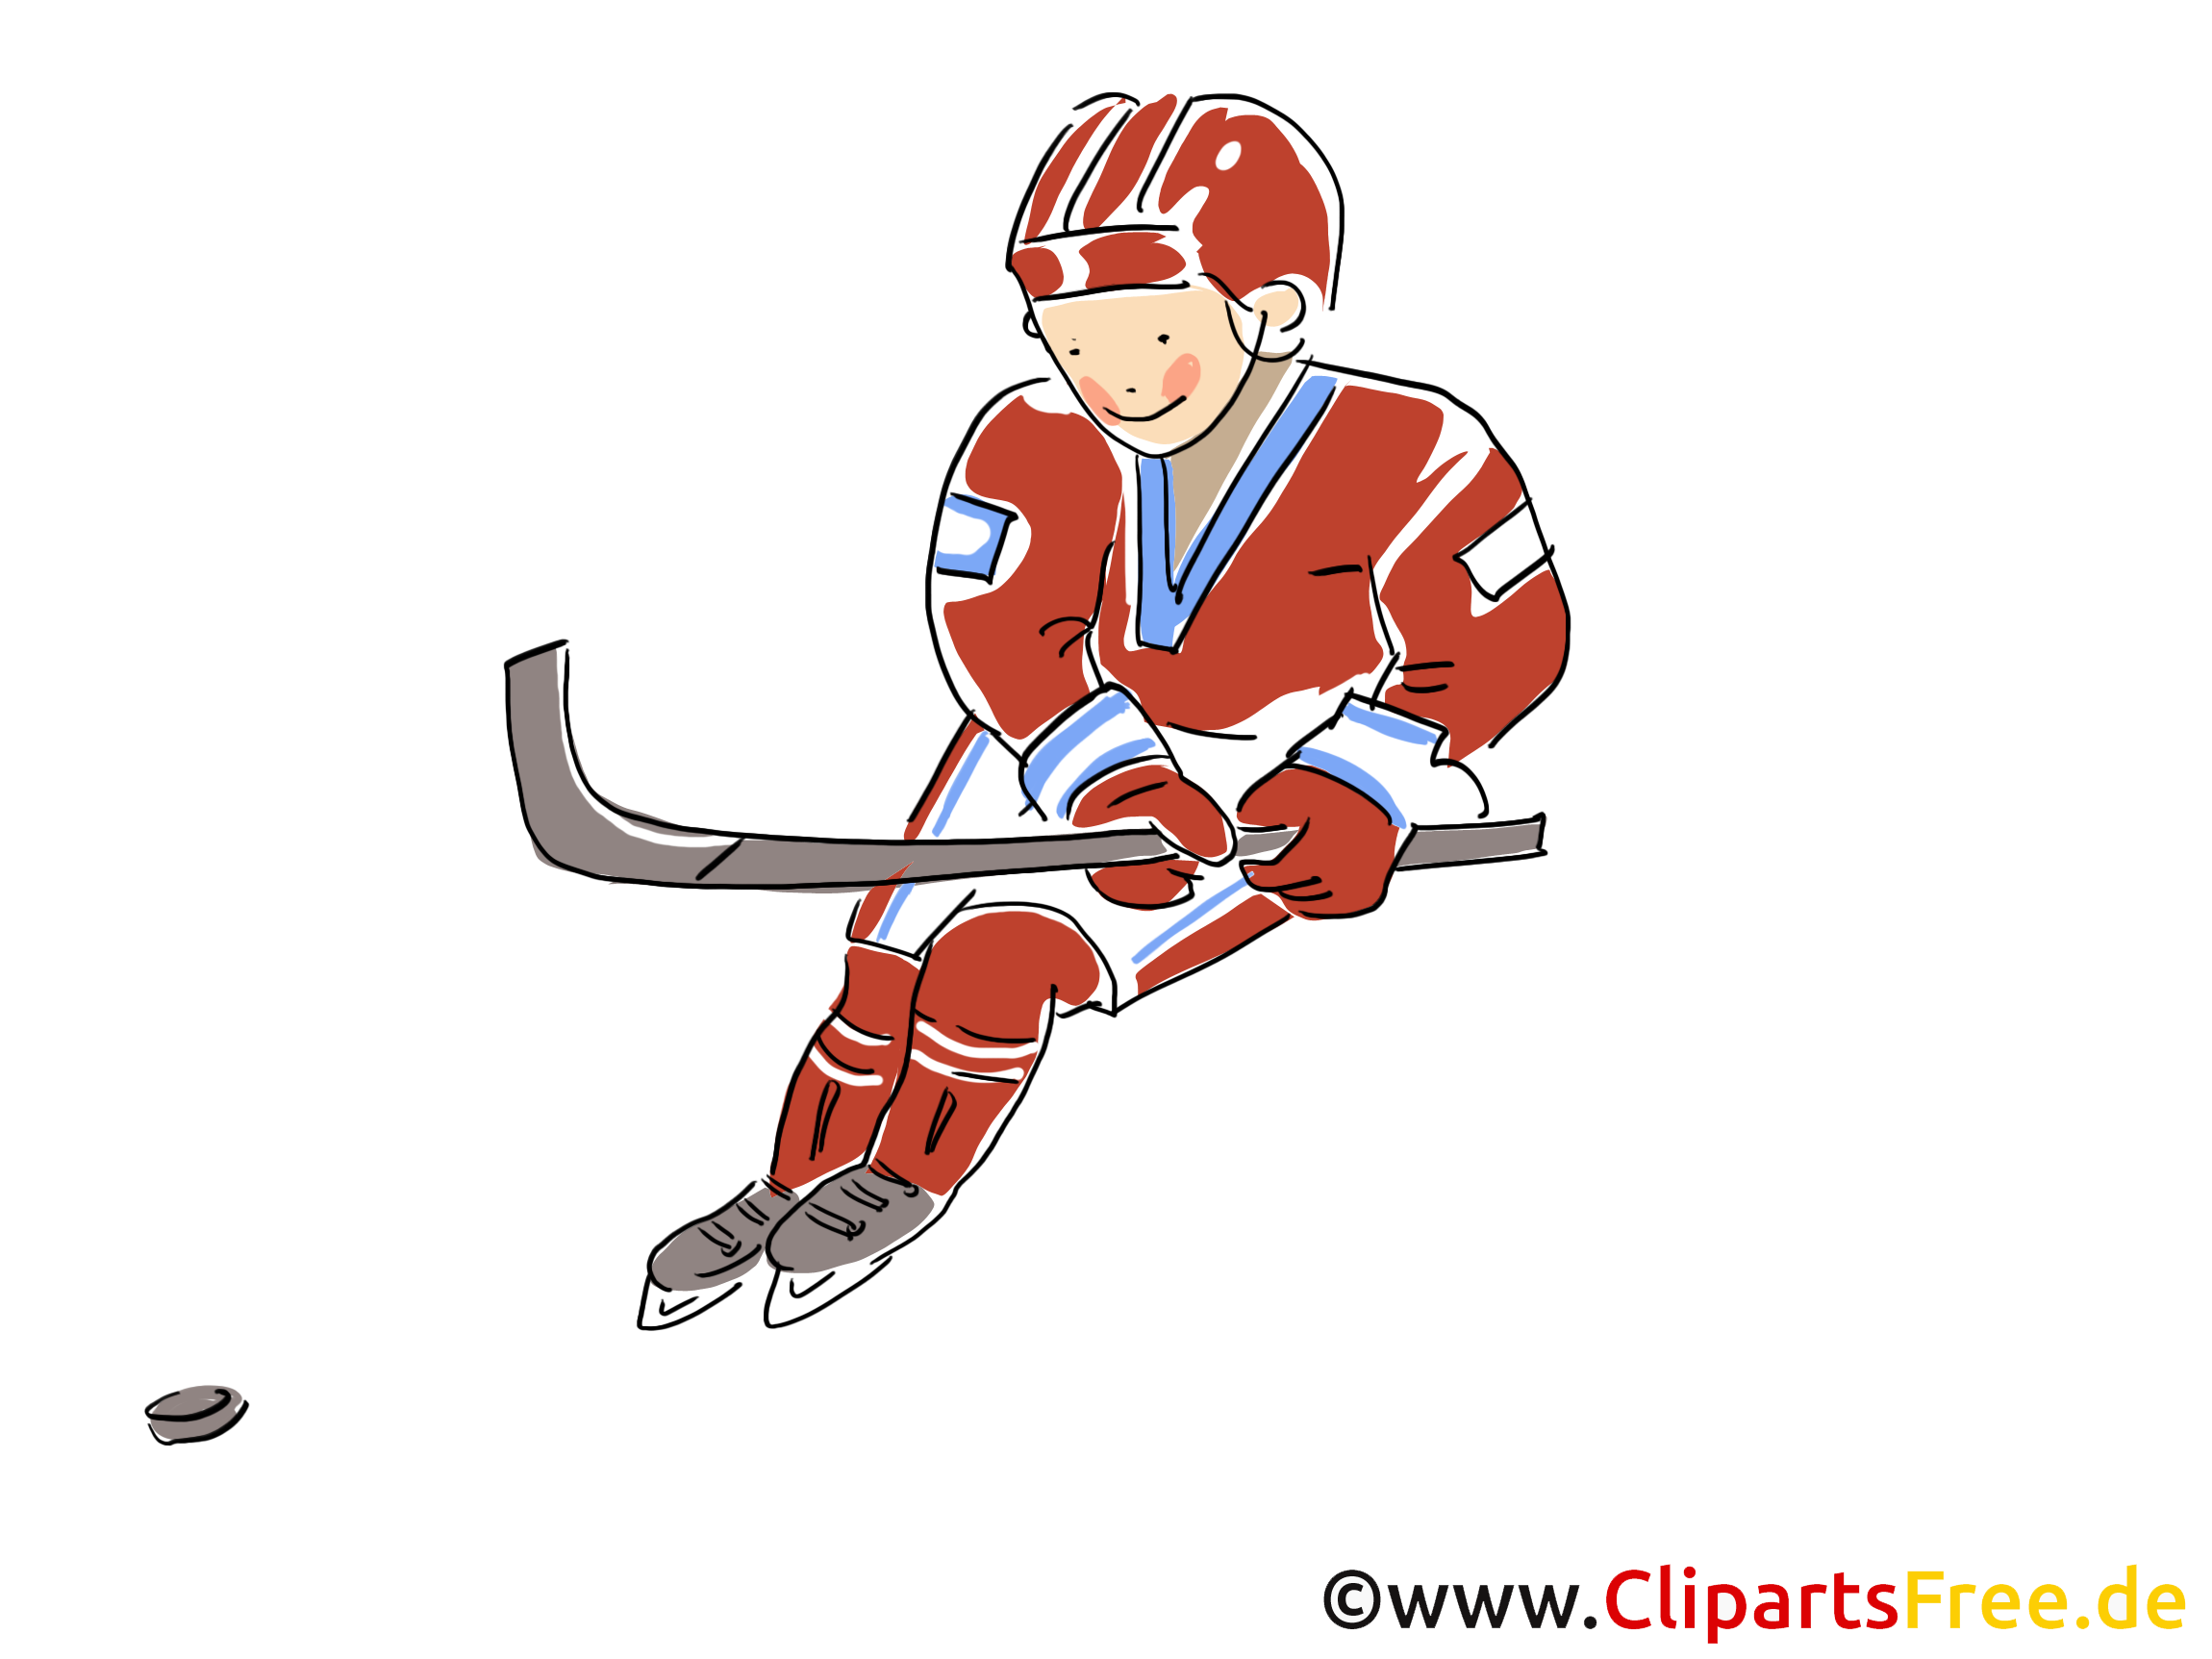 Dessin cross - Hockey cliparts à télécharger